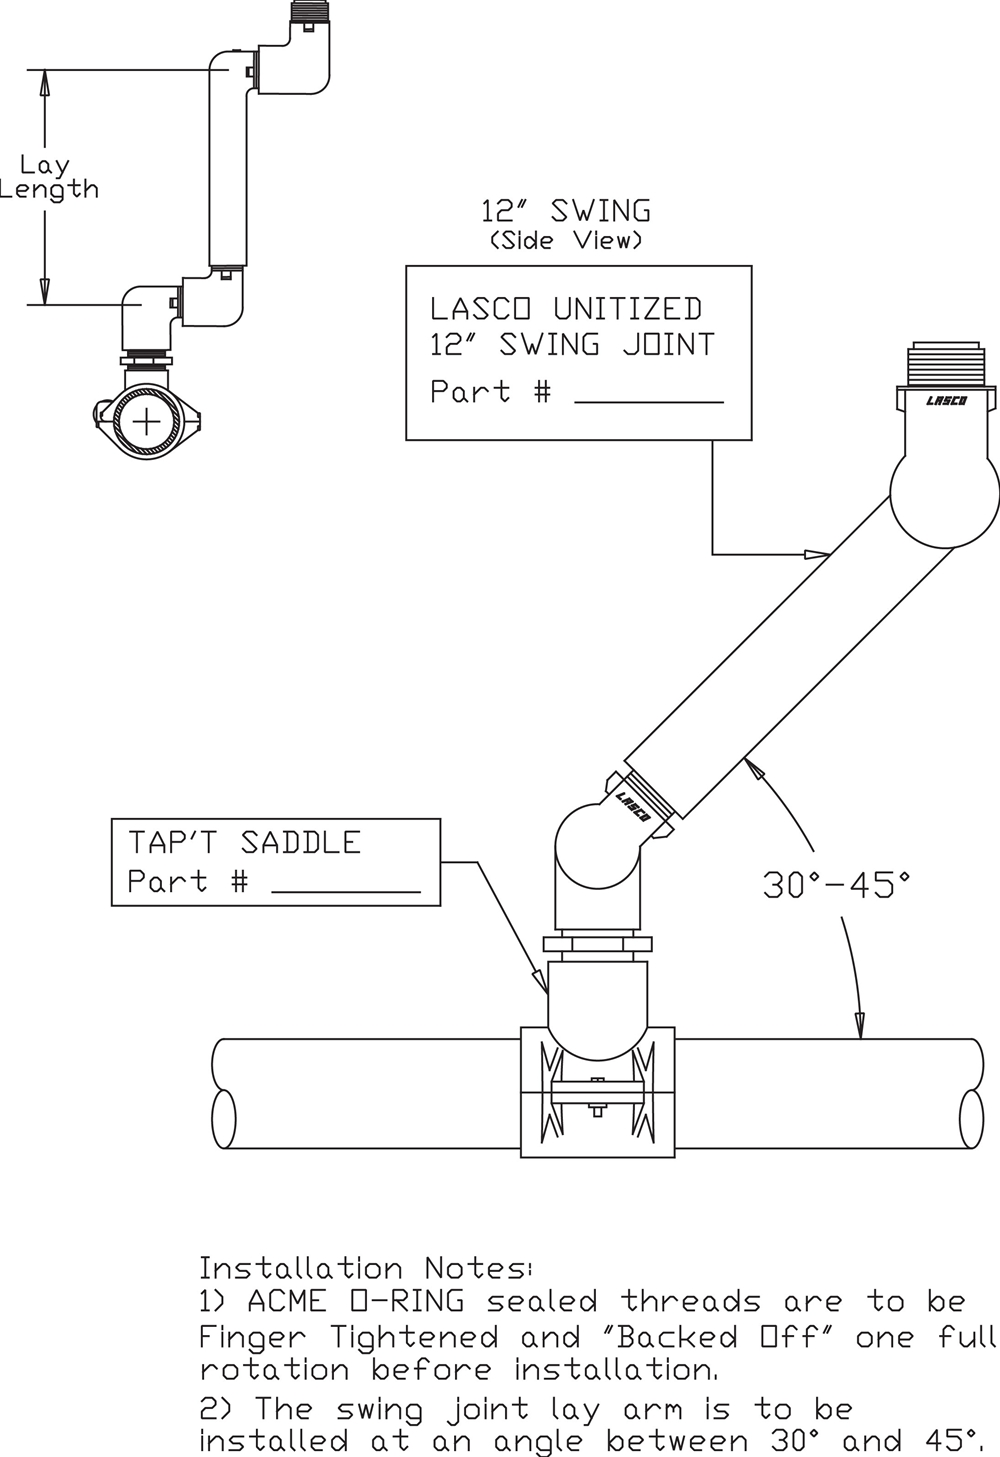 Swing Joint General Product Cad Drawings Saddle Diagram Backed Off One Full Rotation Before Installation 2 The Lay Arm Is To Be Installed At An Angle Between 30 And 45 Degrees Download Dwg